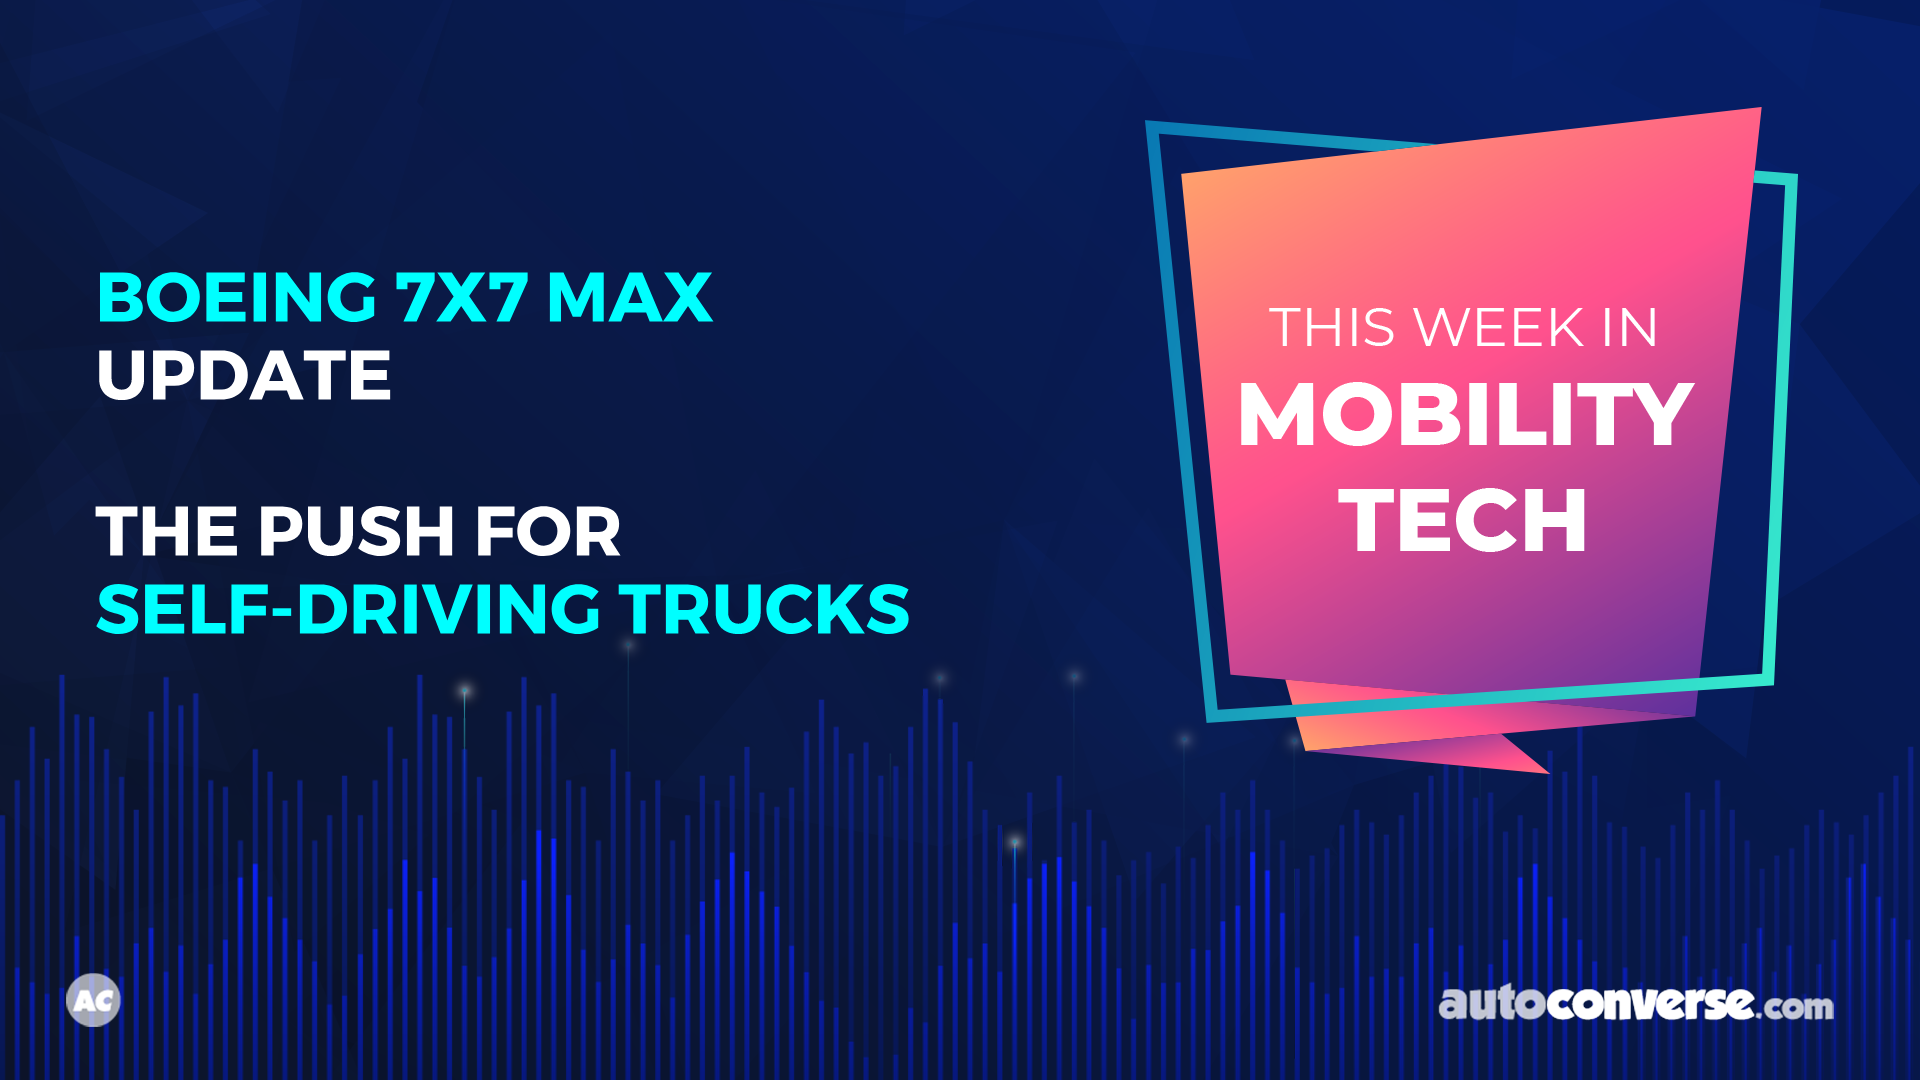 This Week in Mobility Tech: The Push for Self-Driving Semi Trucks [VIDEO]